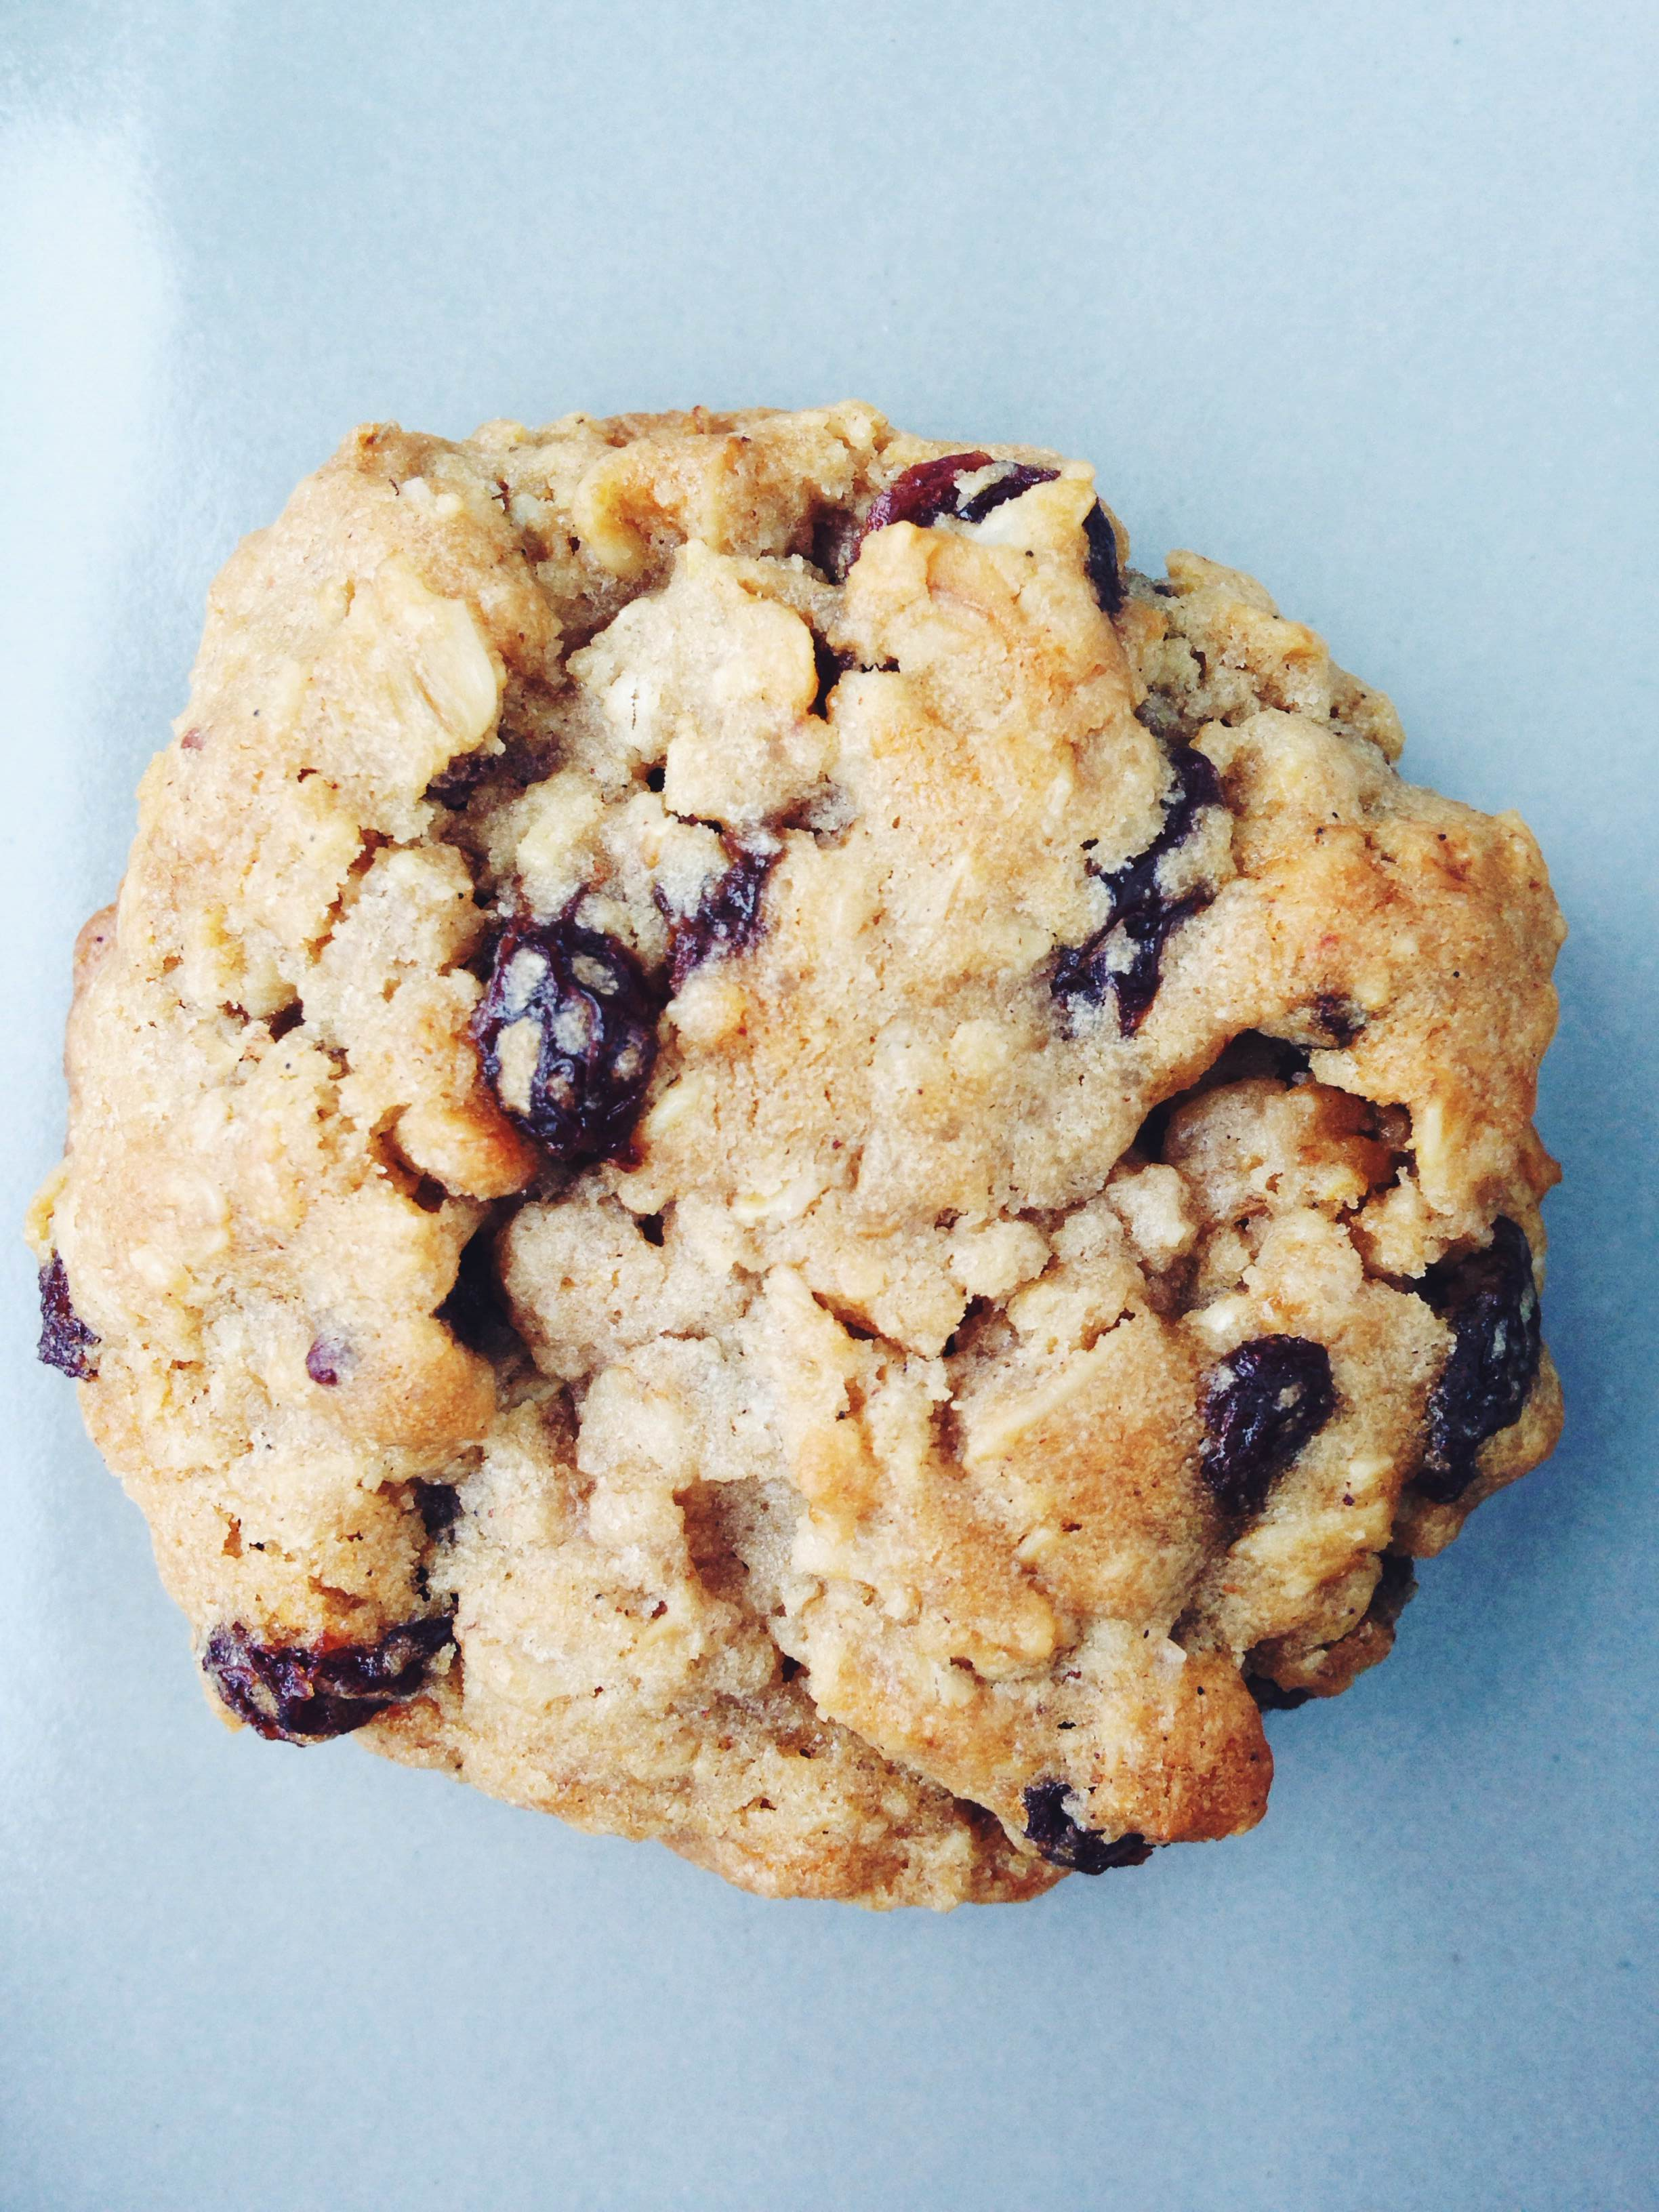 72-hour-oatmeal-raisin-cookie.jpg